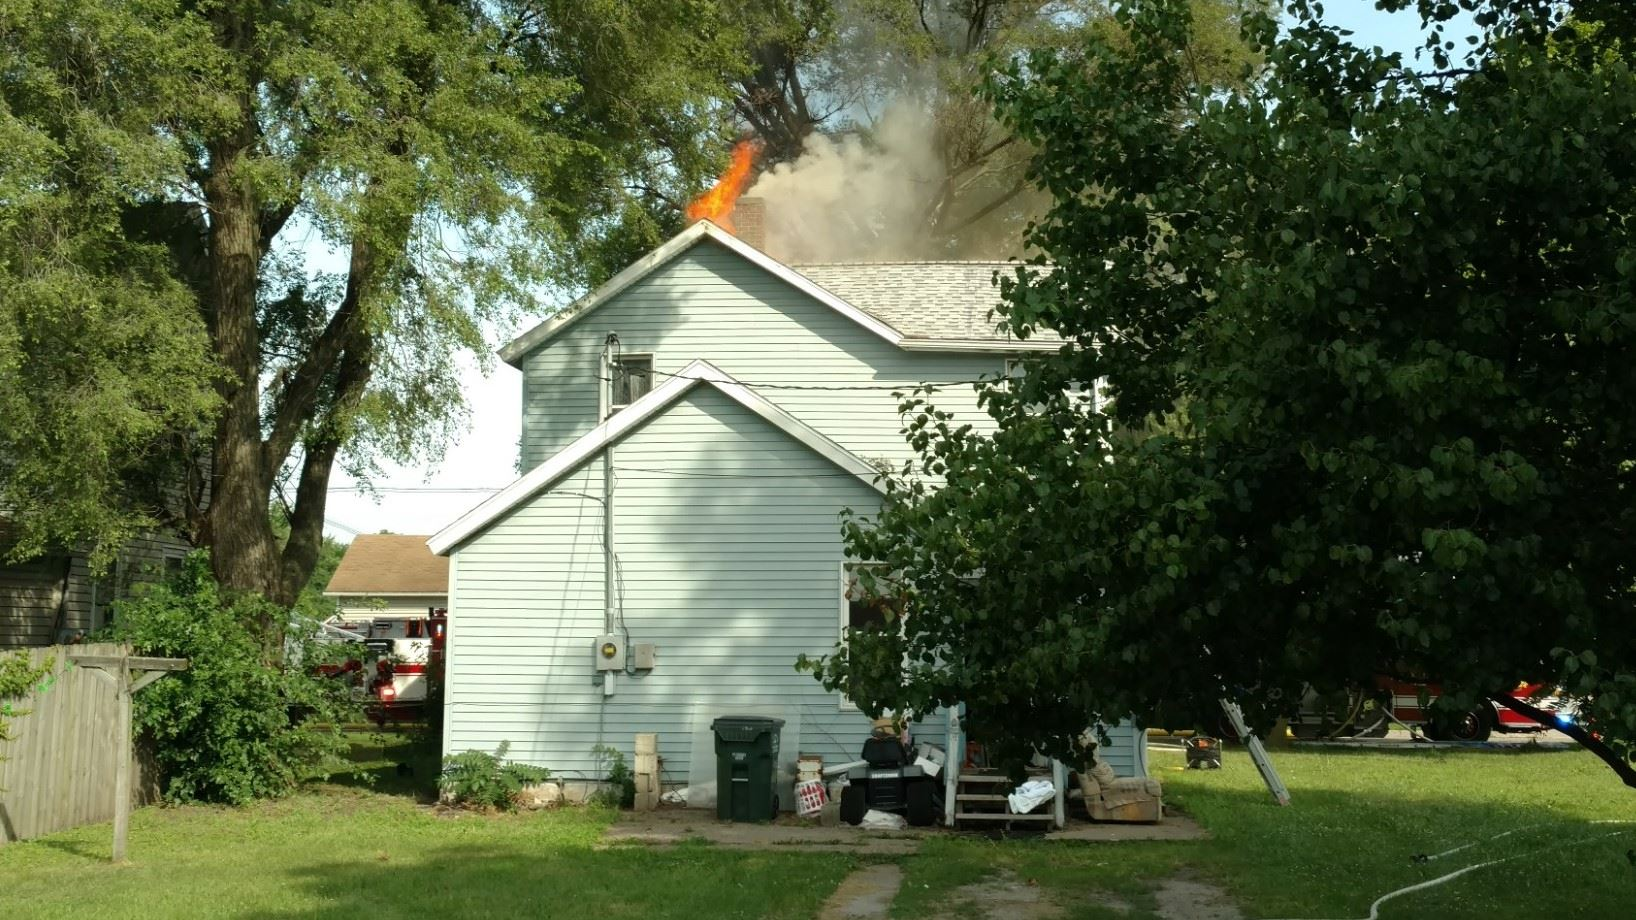 071420 House Fire 512 Liberty Street 002 (JPG)